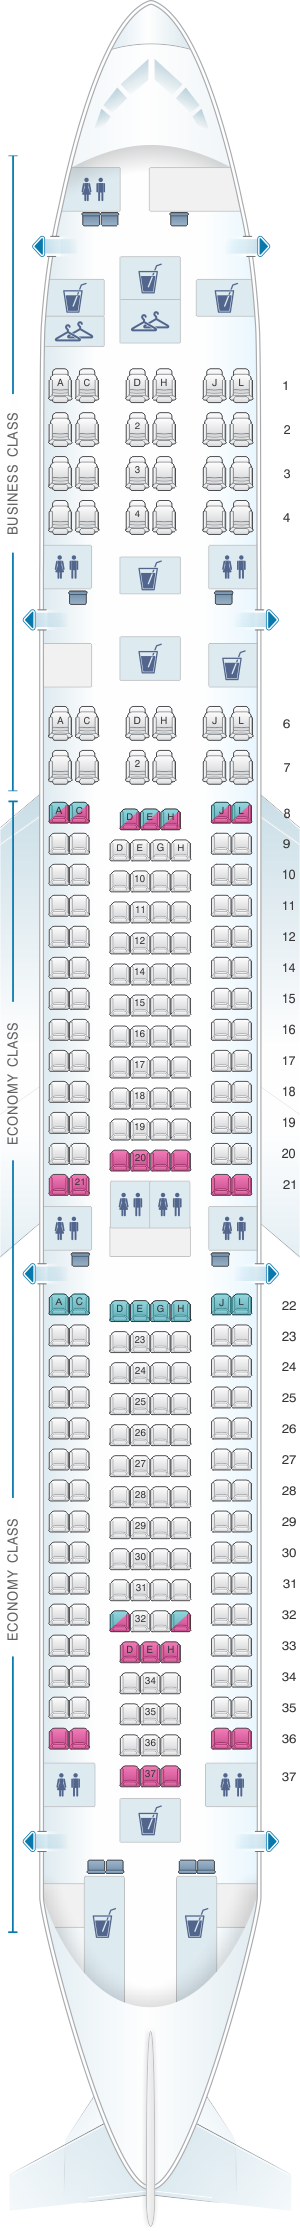 Seat map for Philippine Airlines Airbus A340 300 254pax